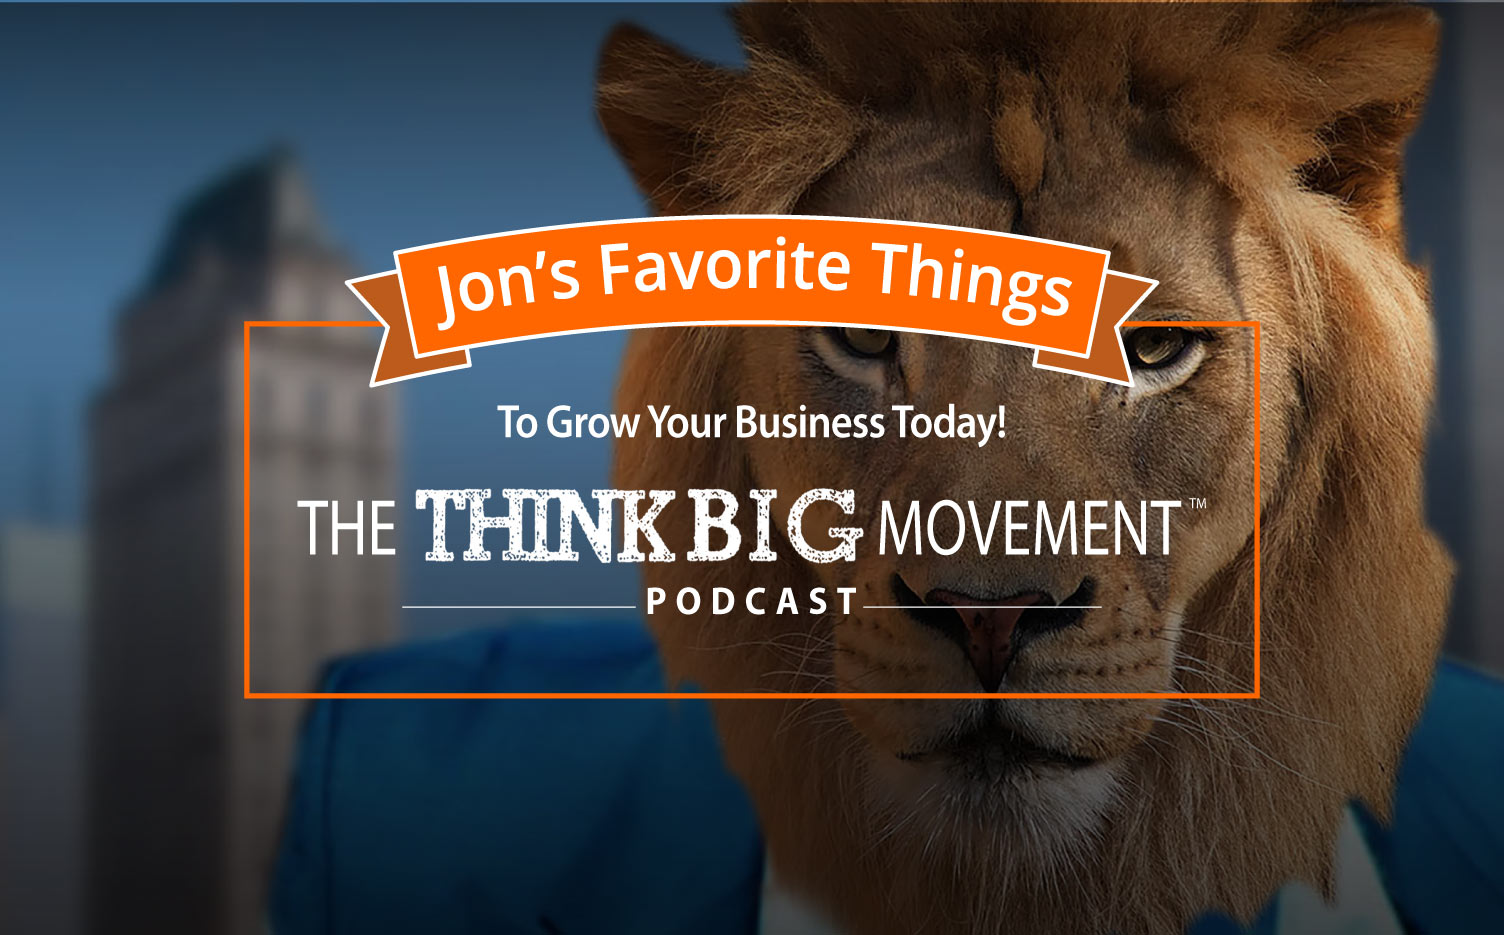 The Think Big Movement Podcast: Jon Dwoskin's Favorite Things 28: Change Before You Have To